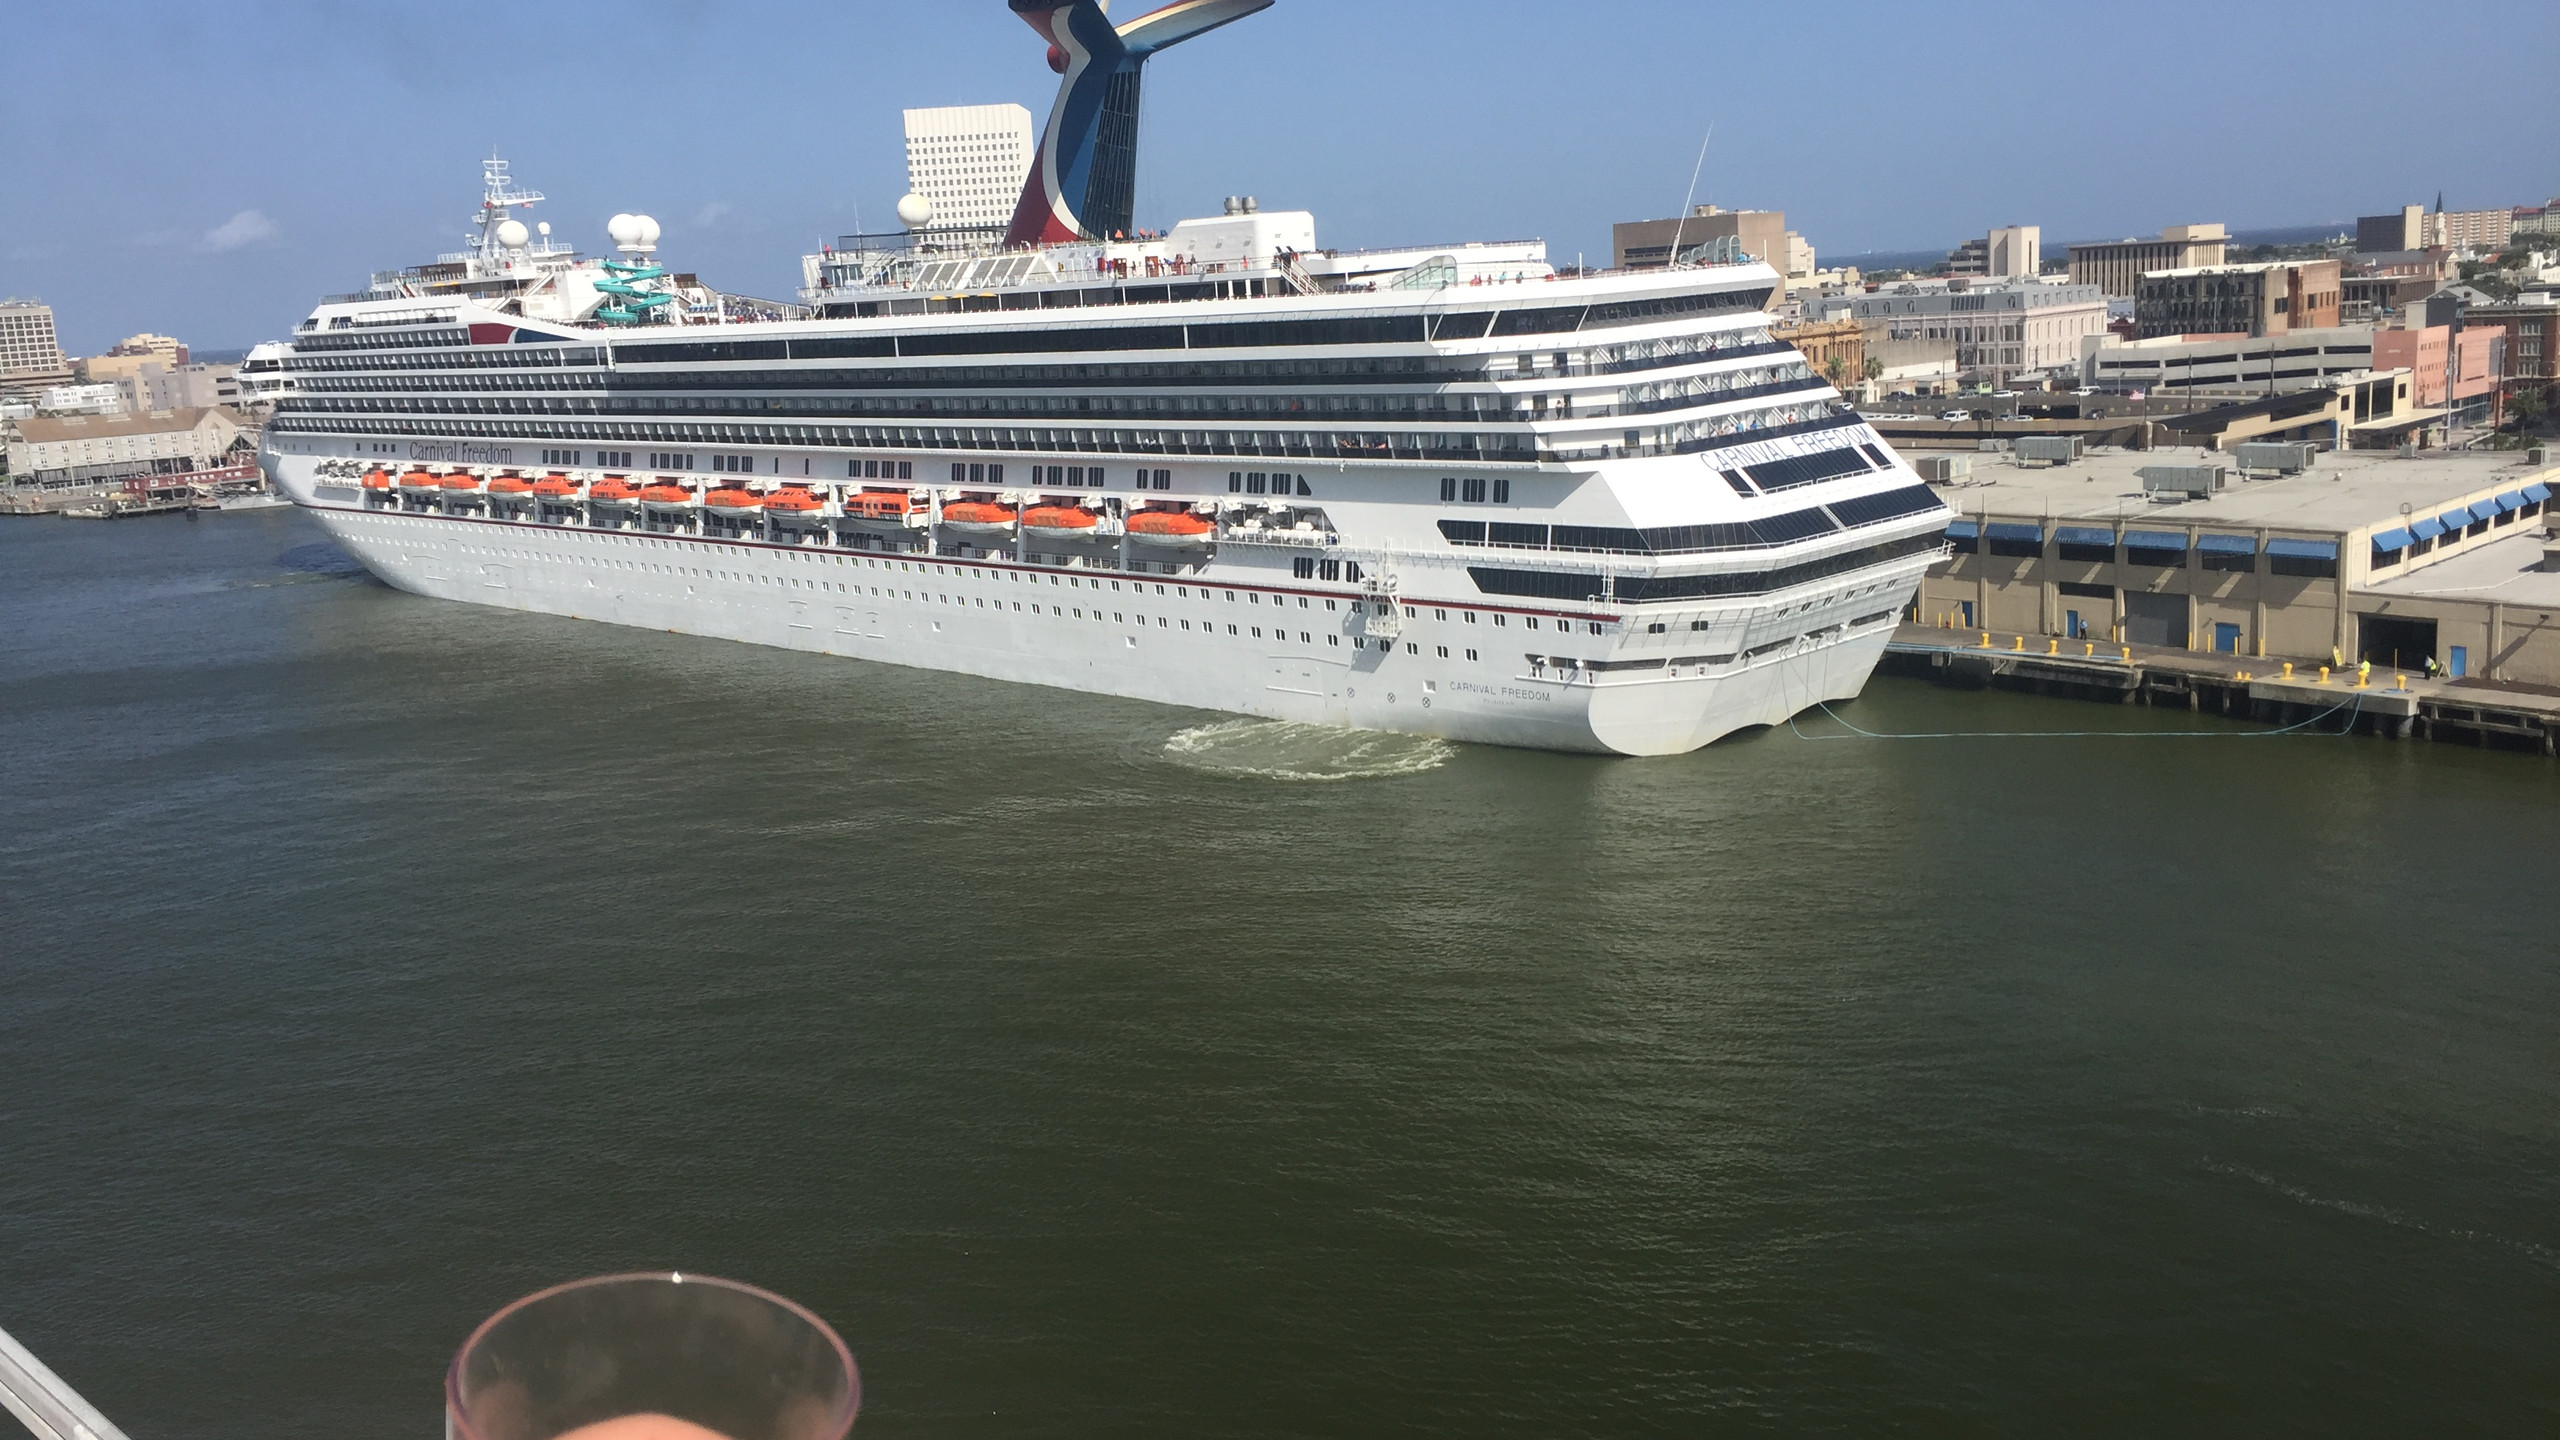 Heading out with Carnival Freedom.